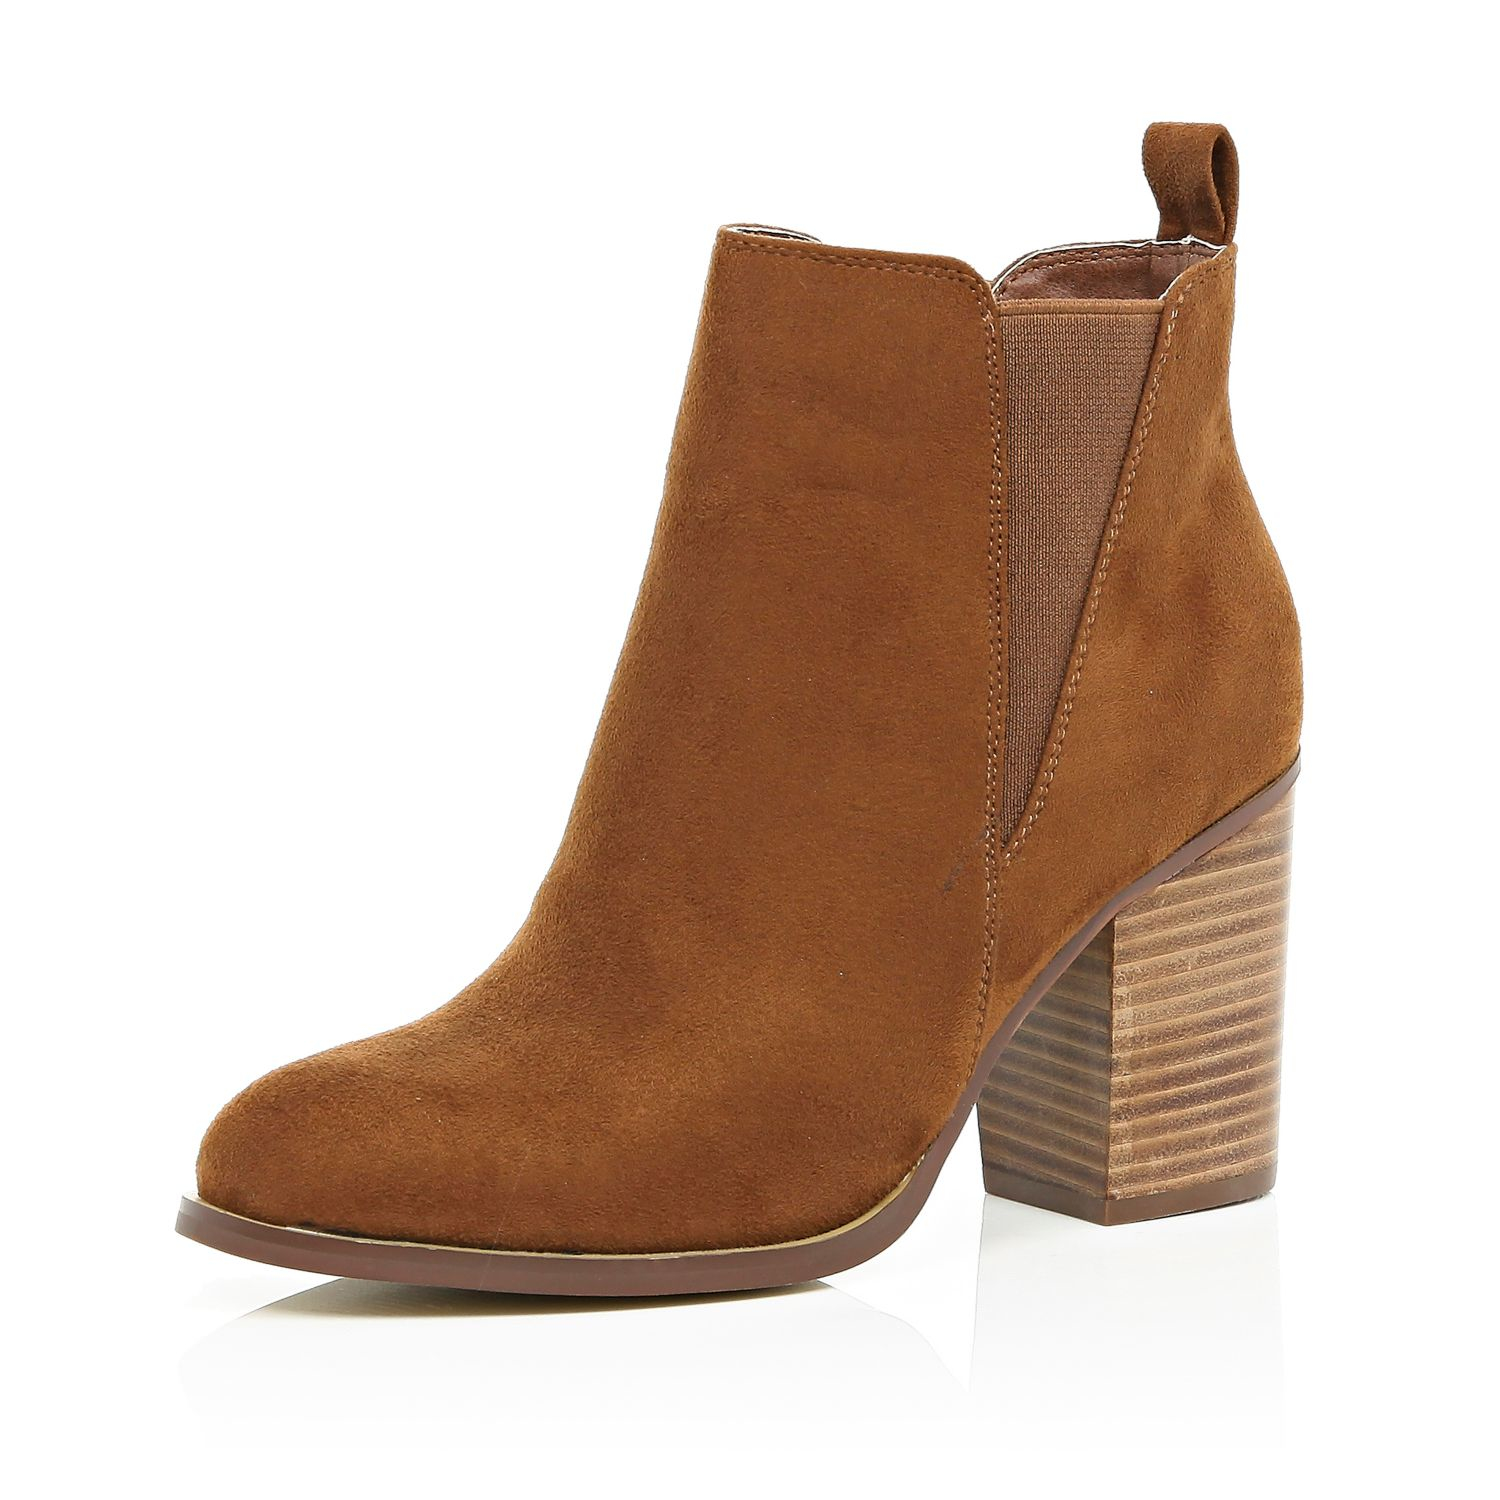 Heeled Chelsea Boots Brown - Shoes & Boots Review